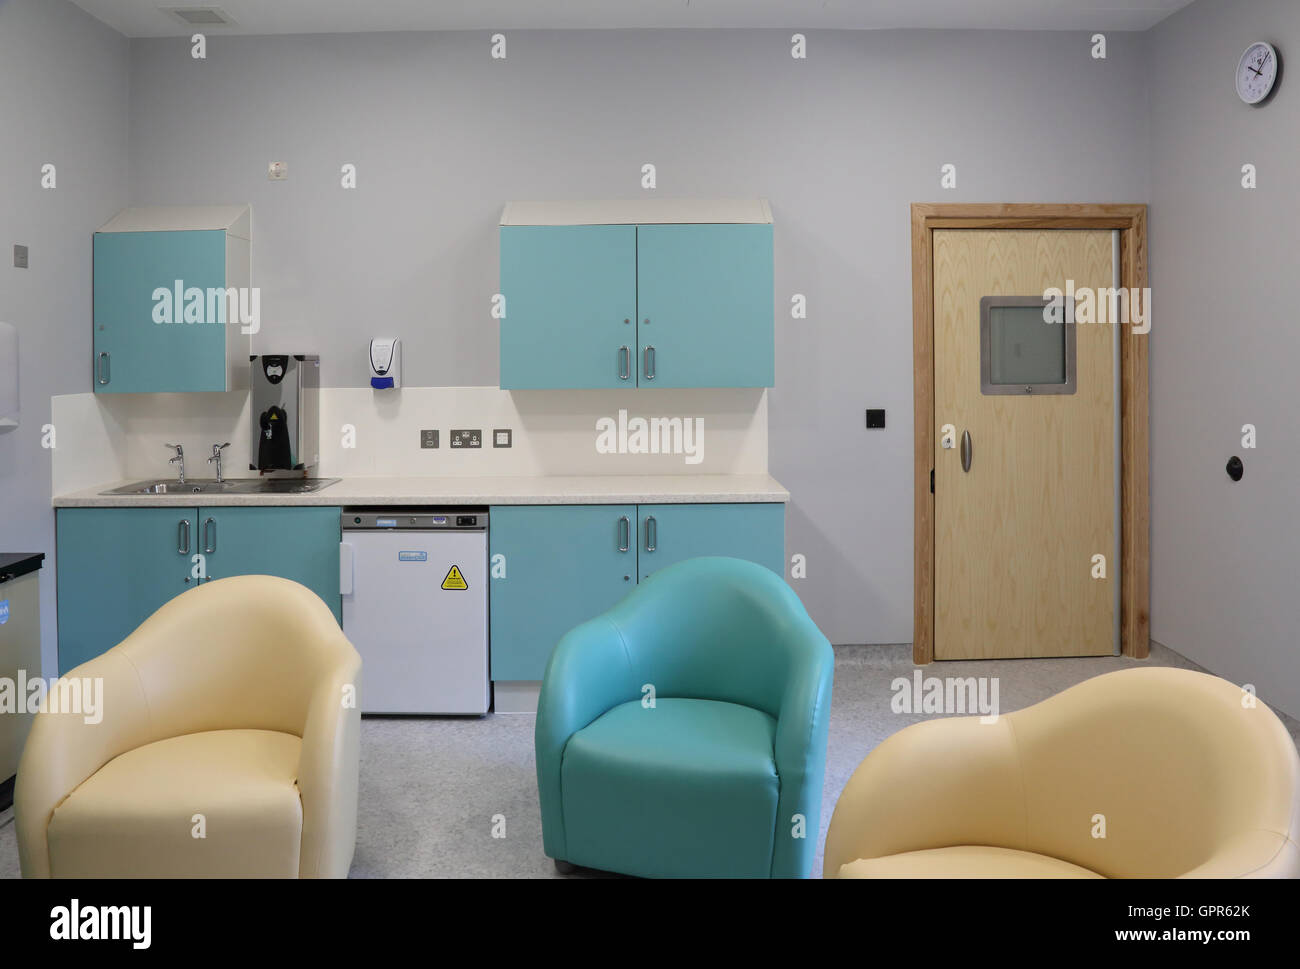 Visiting room in a new secure psychiatric hospital unit - shows specialist furniture and high-security door - Stock Image